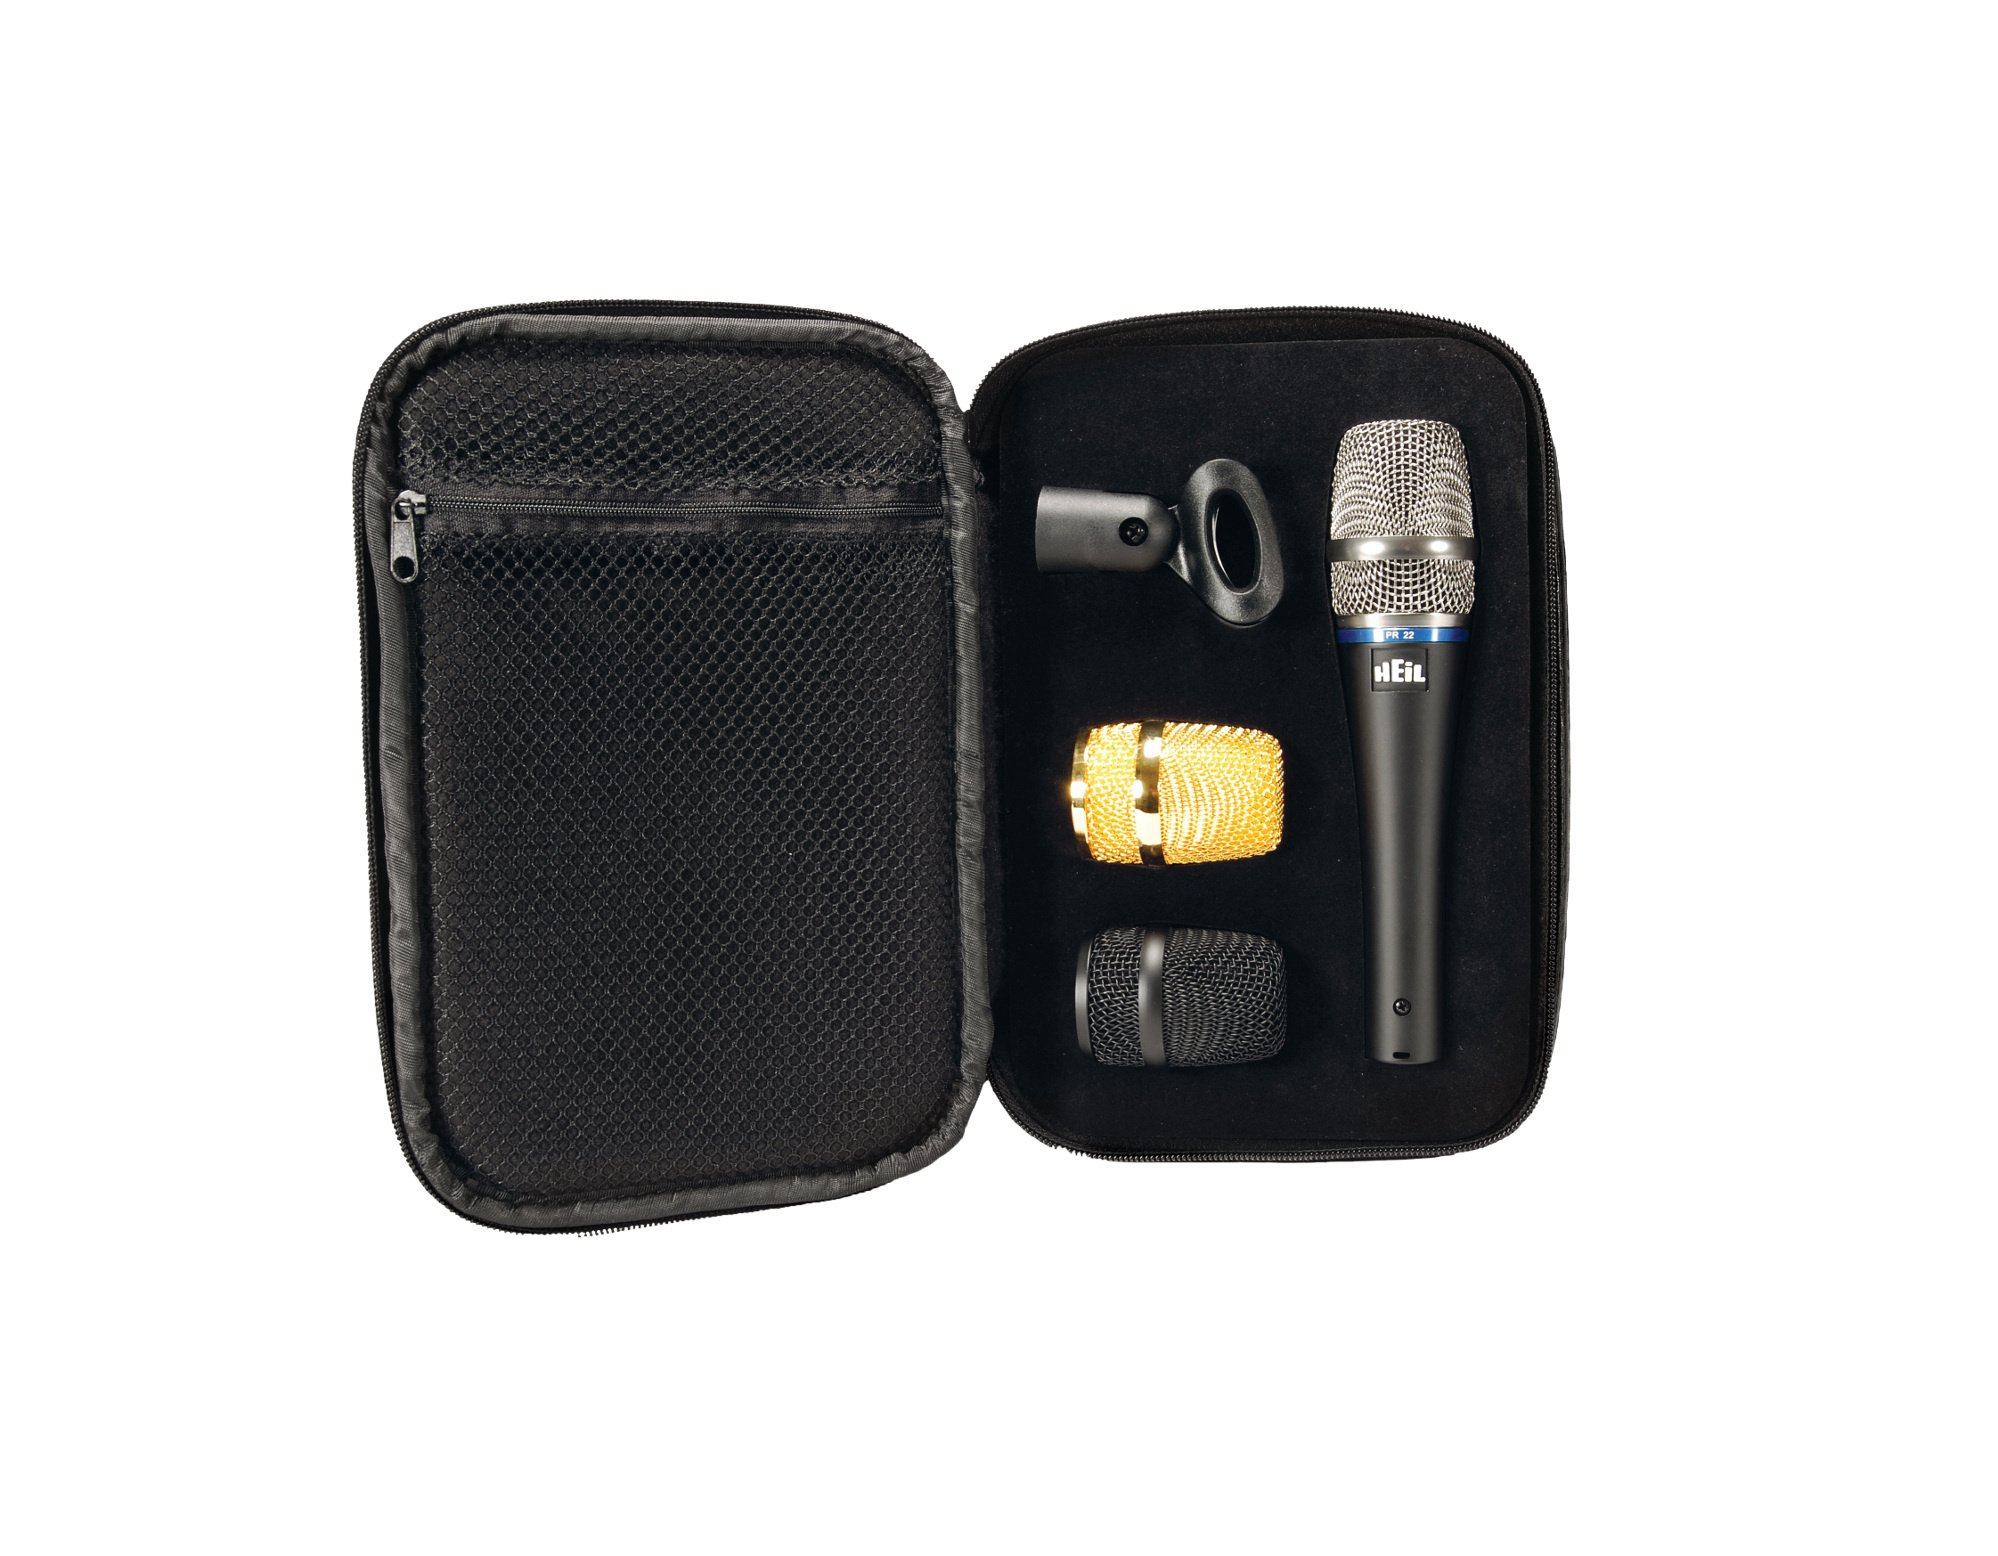 Large Diaphragm, Low Noise Dynamic Microphone